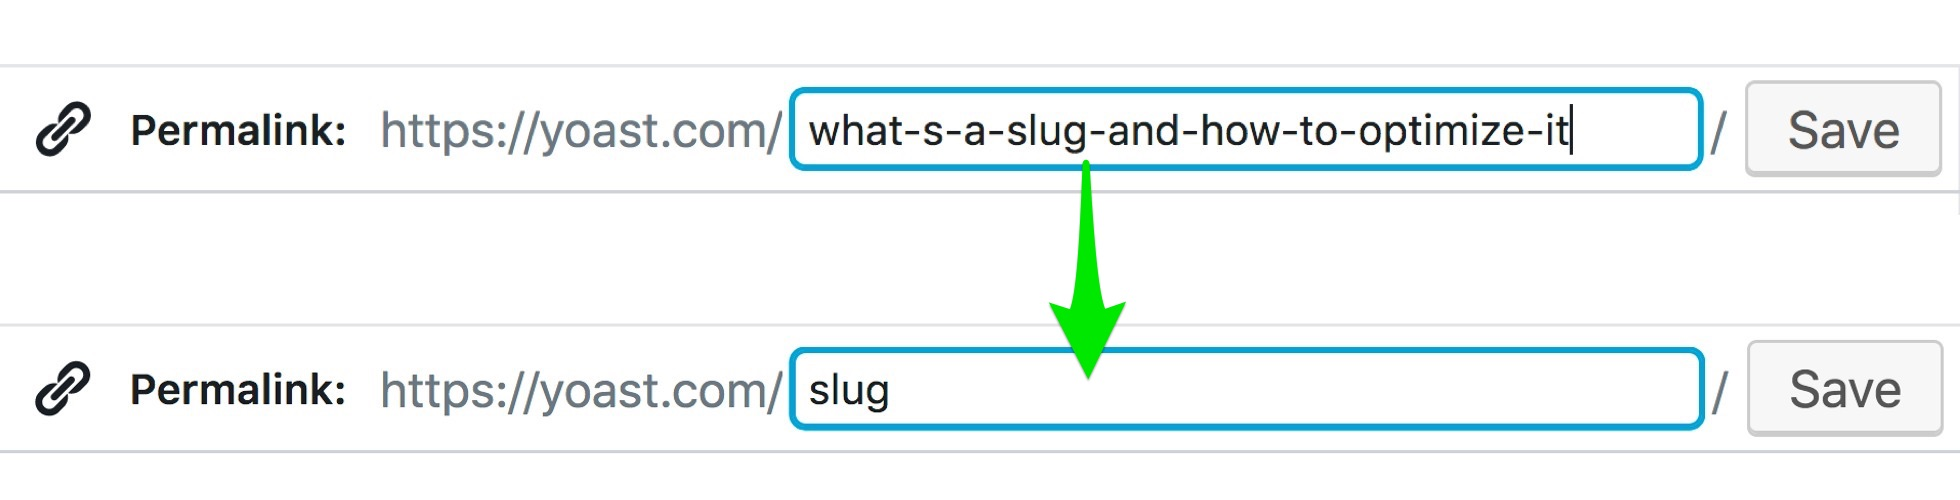 Reduced amount of words so slug is more focused